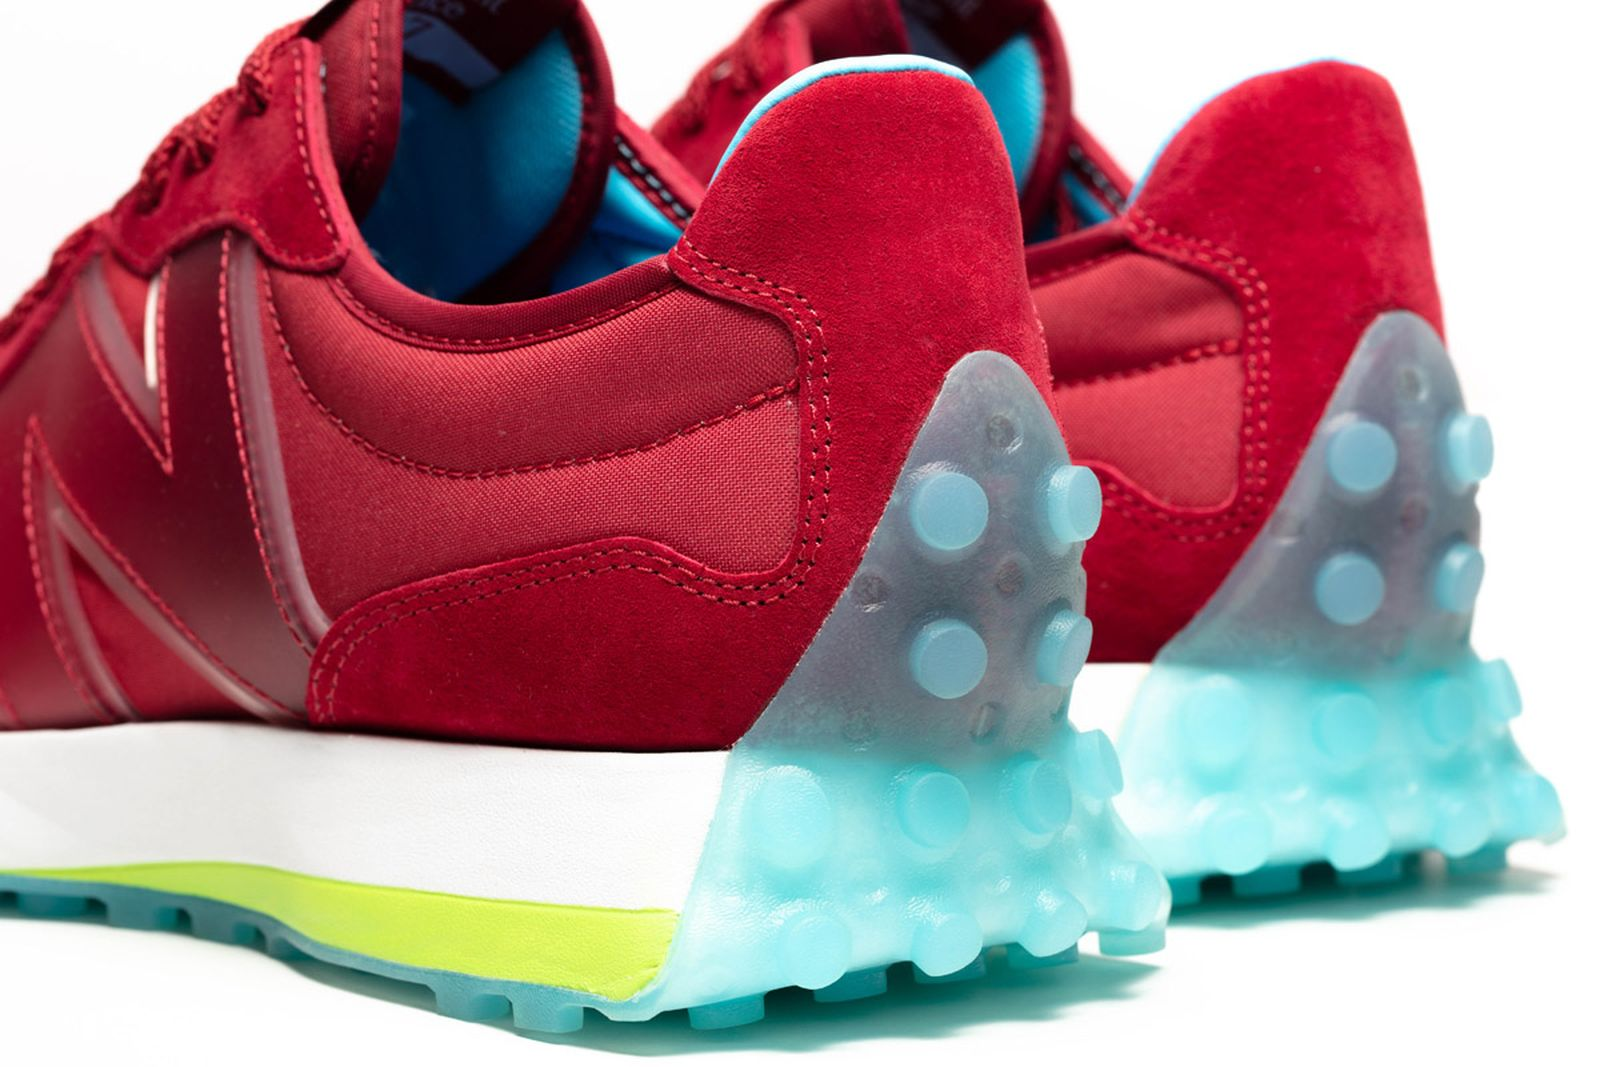 13new-balance-concepts-cranberry-product-shots